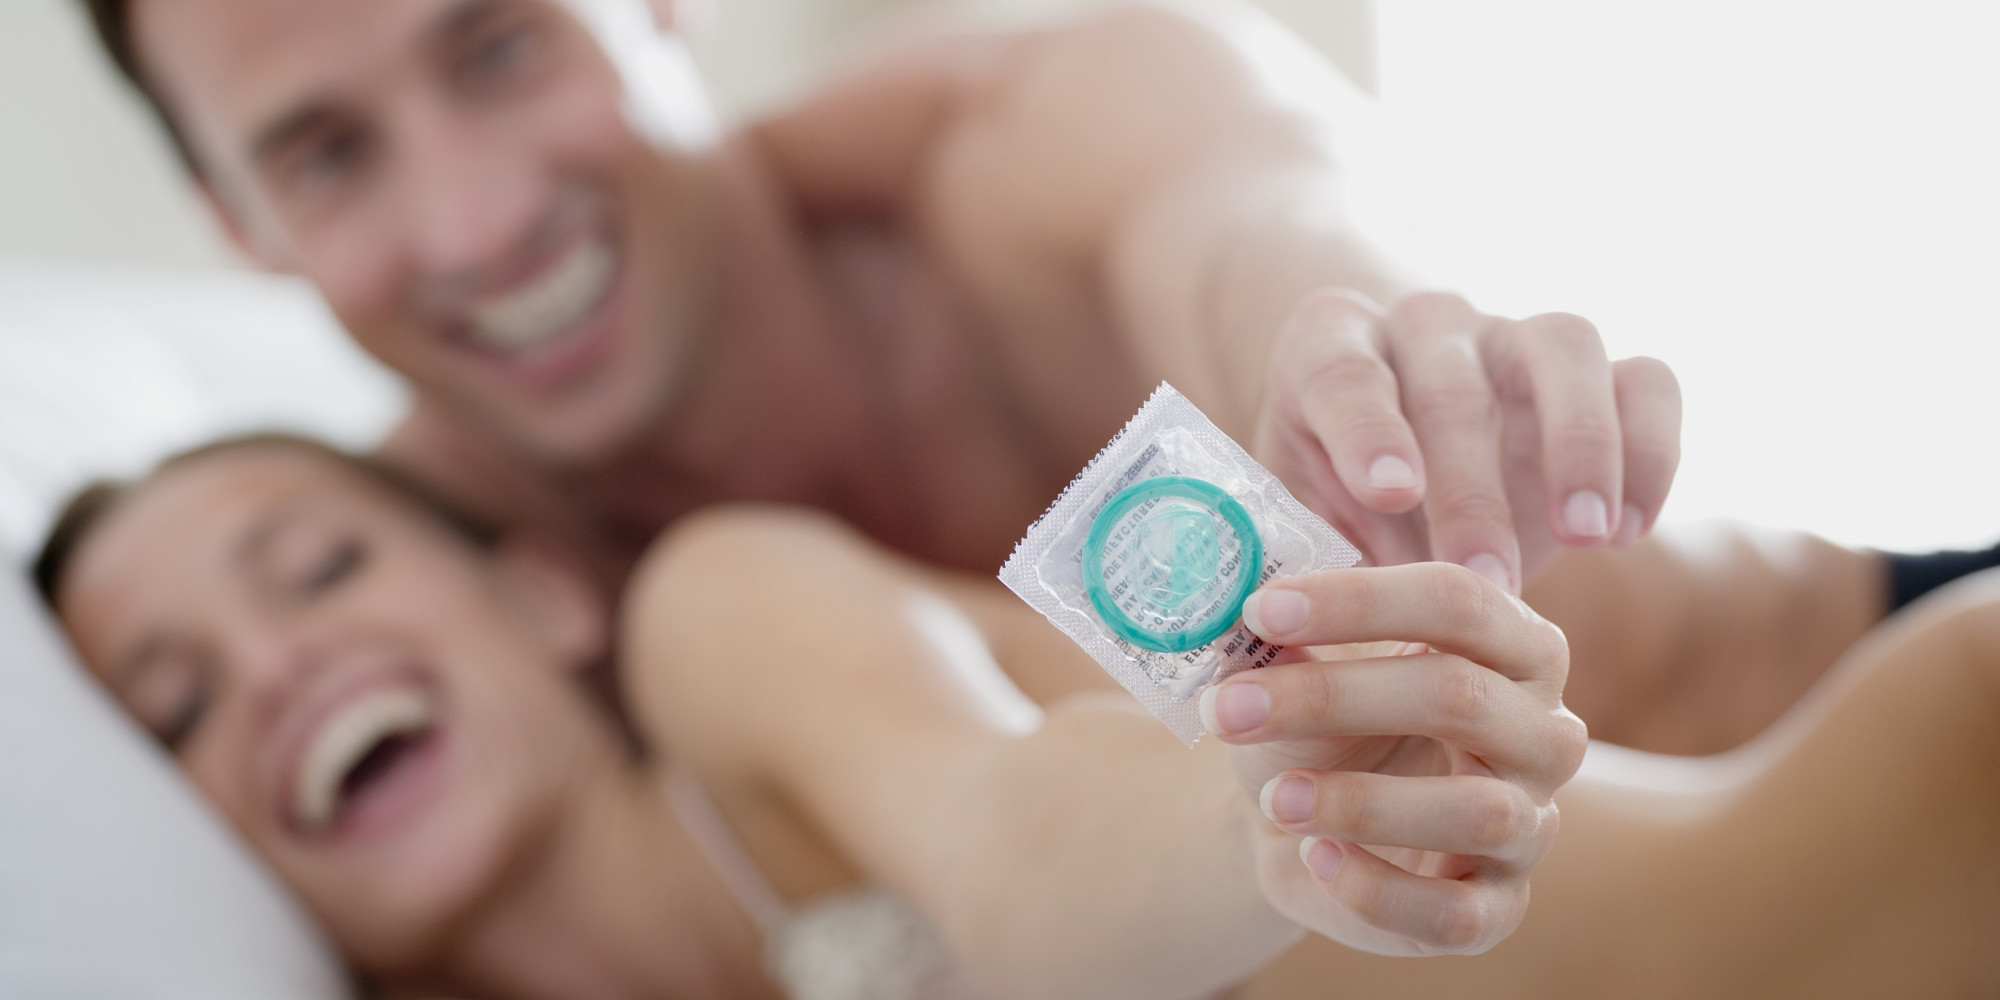 safe sex with herpes condoms forum